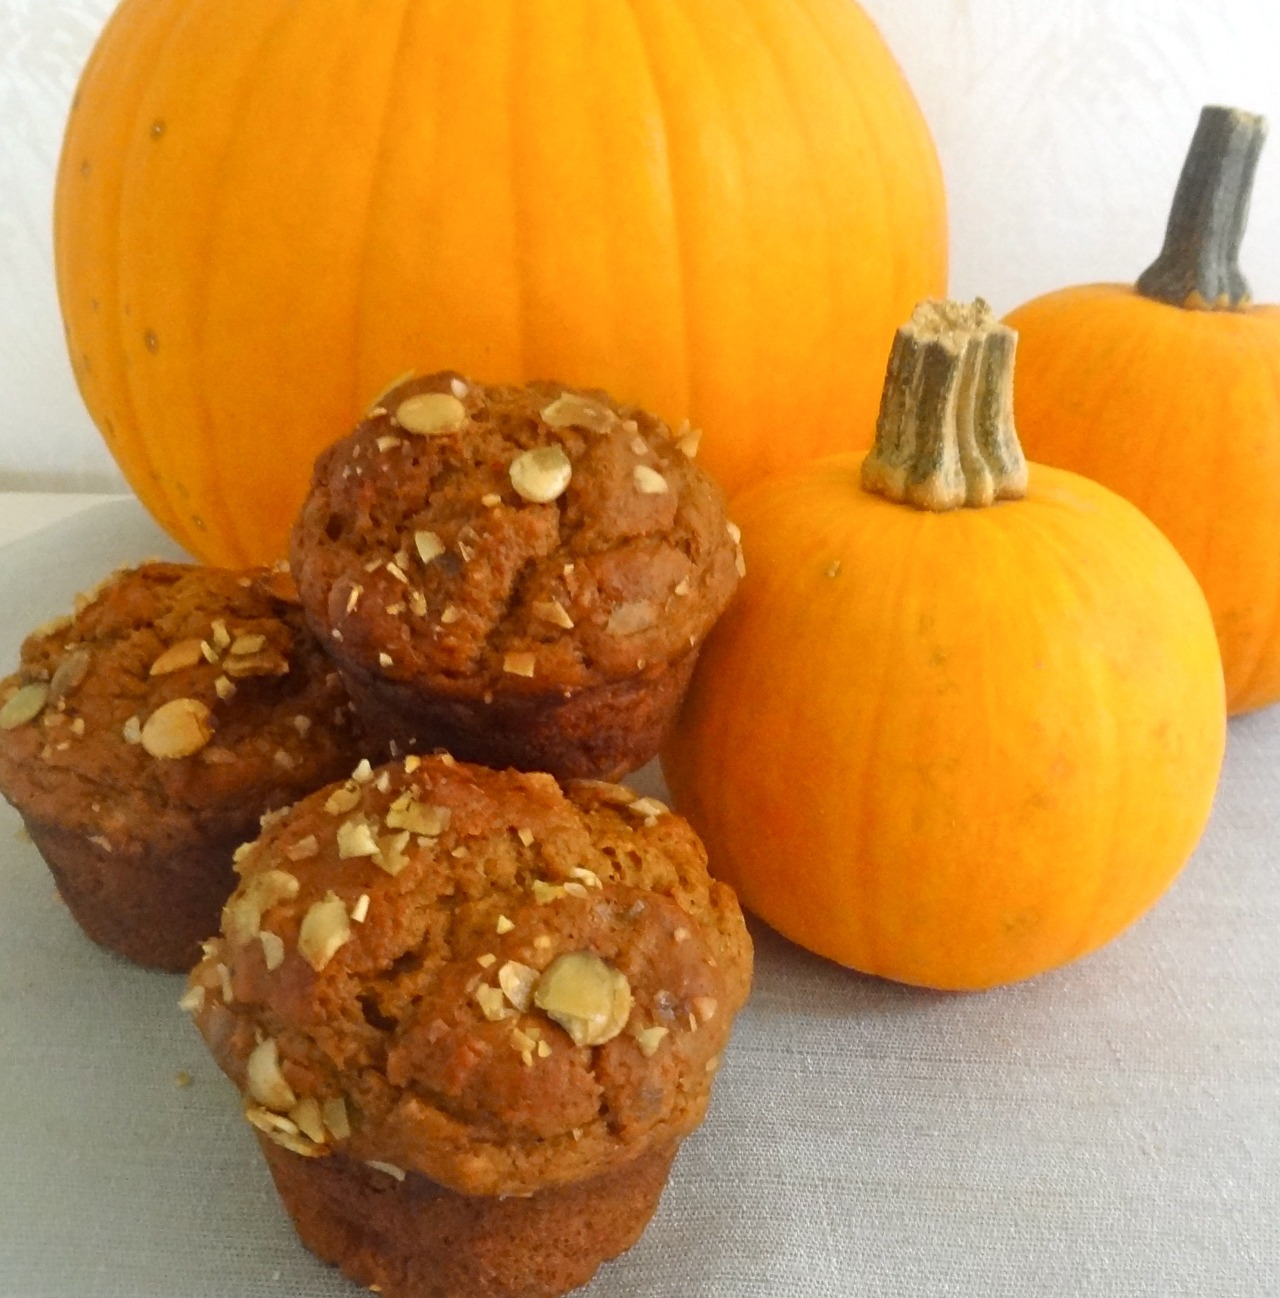 As soon as I see that pumpkins have replaced the corn and tomatoes at the market I start hungering for food that's autumn-like. Mostly pumpkin bread and muffins to snack on when I need a little something in the late afternoon with my last cup of coffee for the day.    I don't make pumpkin muffins as often as I do  banana bread , but almost. This is my latest version, which has kefir because I happened to have some in the fridge. But buttermilk is fine too.    Reheat leftovers in a toaster oven for a few minutes if you need a quick breakfast.     Btw, I used to bake and mash the pumpkin insides to get the puree, but most of the time I use canned pumpkin or squash. NOT pumpkin pie mix. I want to mix in the spices of my choice, not theirs.       Pumpkin Muffins with Kefir and Pumpkin Seeds       3      tablespoons butter    1-3/4 cups flour    1 teaspoon baking soda    1/2 teaspoon baking powder    1/2 teaspoon salt    1 teaspoon cinnamon    1 teaspoon freshly grated nutmeg    1/8 teaspoon ground cloves    2 tablespoons brown sugar    1 cup mashed pumpkin (not pumpkin pie mix)    3/4 cup kefir    1/4 cup molasses    1 large egg    2-3 tablespoons crushed pumpkin seeds              Preheat the oven to 400 degrees. Lightly grease 9 muffin tin cups. Melt the butter and set it aside to cool. Sift together the flour, baking soda, baking powder, salt, cinnamon, nutmeg, cloves and brown sugar. In a separate bowl, combine the pumpkin, kefir, molasses, egg and cooled, melted butter. Add the liquid ingredients to the dry ones and mix only long enough to combine. Spoon the batter into the prepared muffin tin cups. Scatter the pumpkin seeds evenly on top of each muffin. Bake for 22-25 minutes or until a cake tester inserted into the center comes out clean. Makes 9